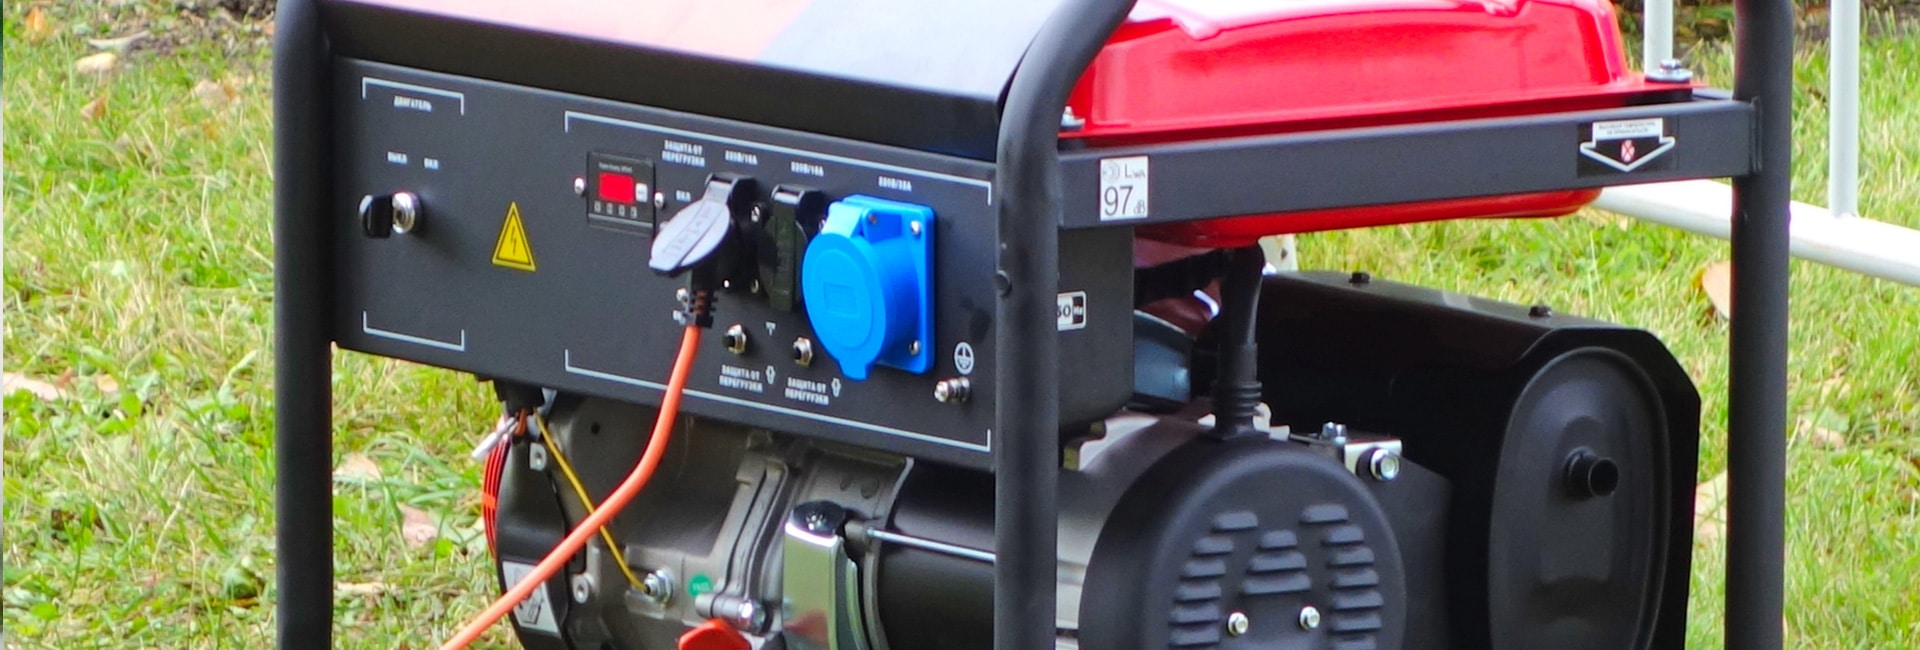 How to maintain your generator? - Electric generator